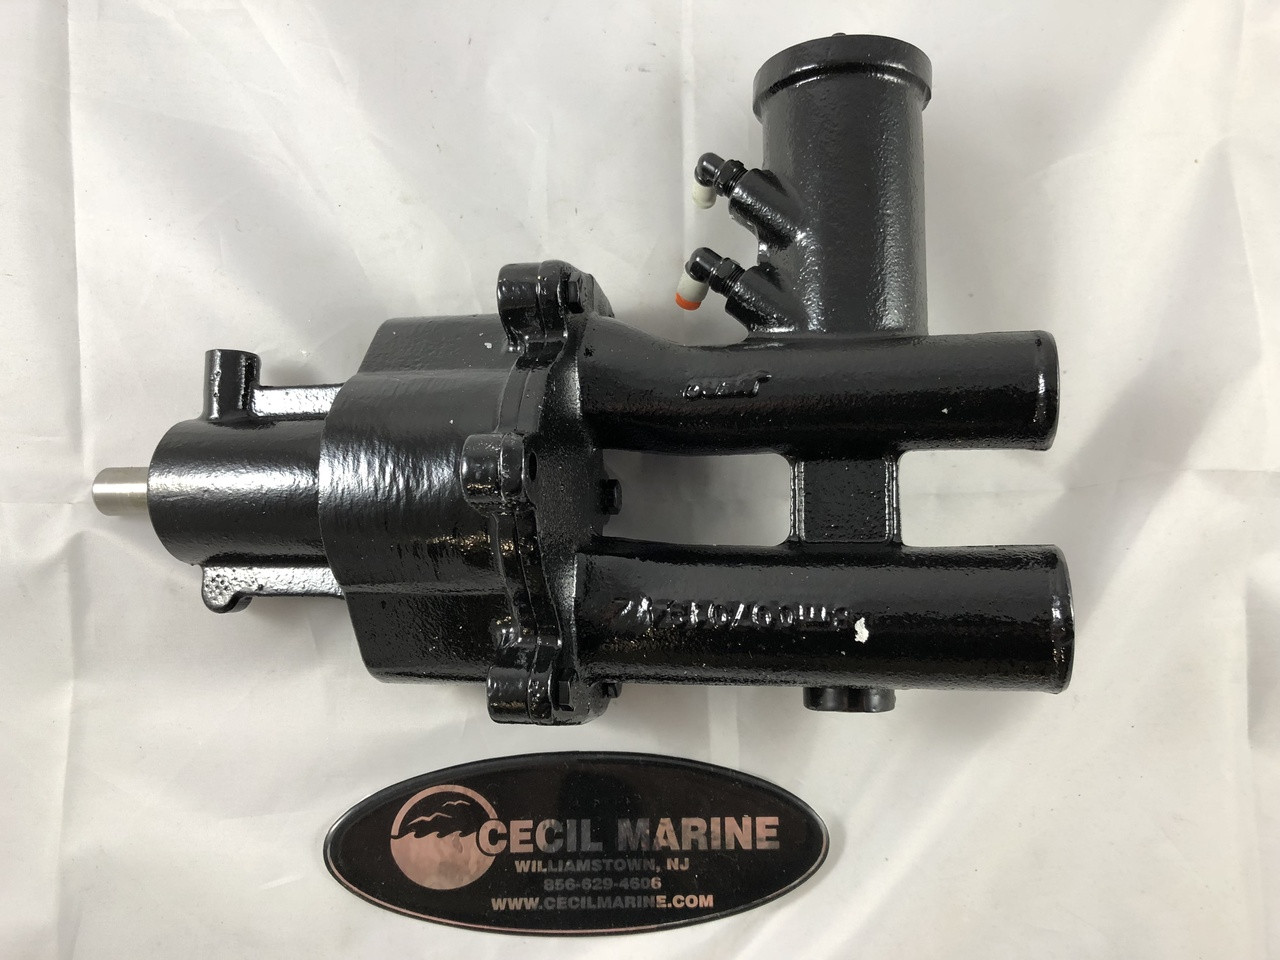 ** $623.48 **GENUINE MERCRUISER BRASS SEAWATER PUMP WITH AIR FITTINGS  46-8M0122658 - ** IN STOCK & READY TO SHIP! **